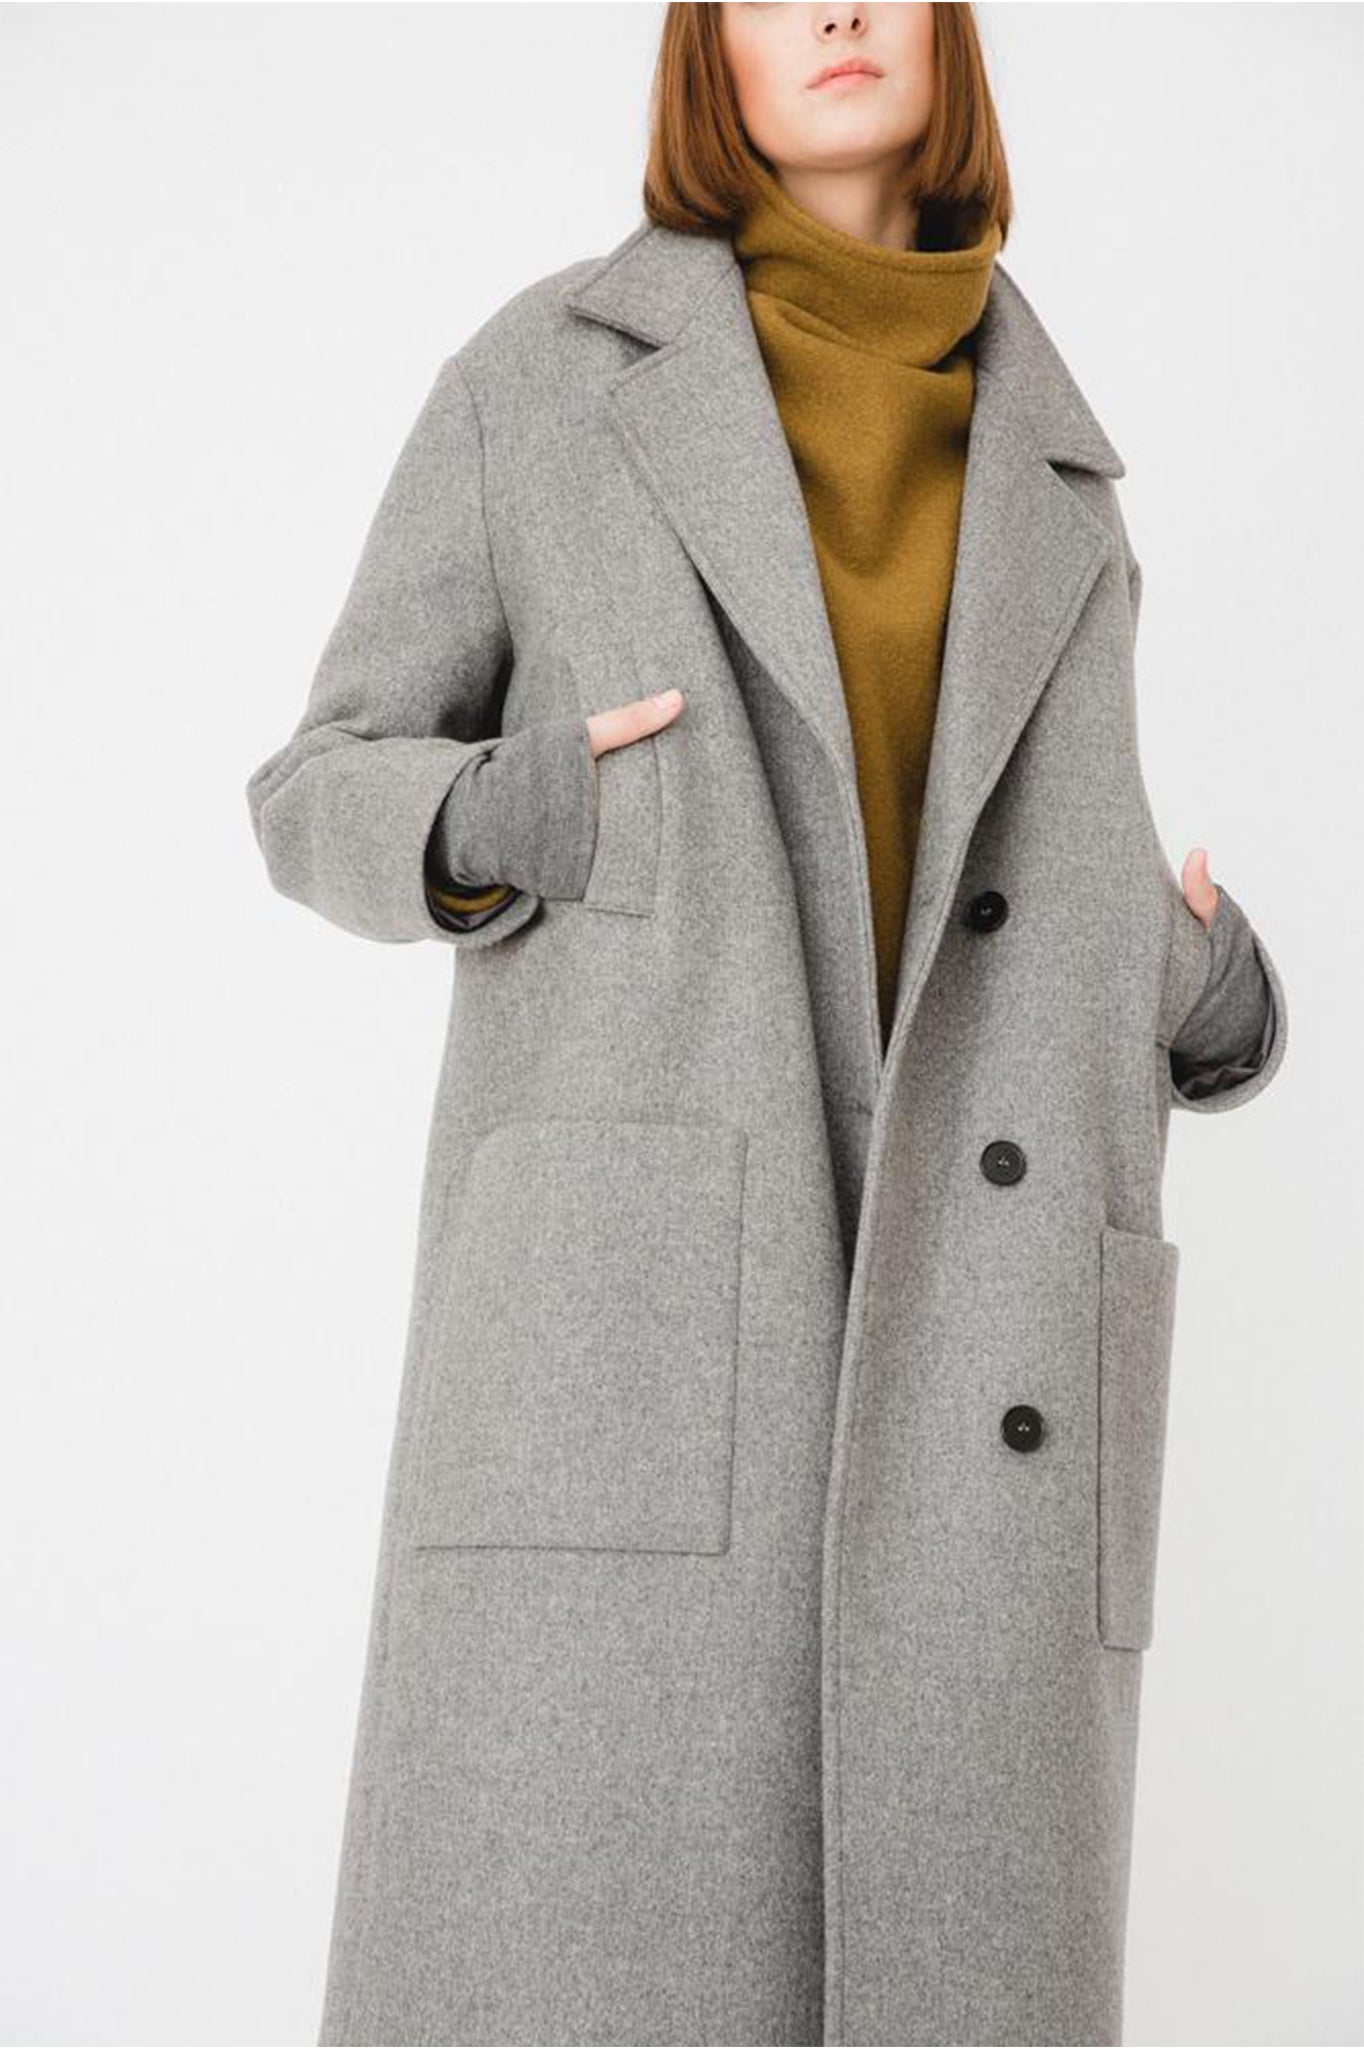 Buffet Classic Grey Oversized Woollen Coat